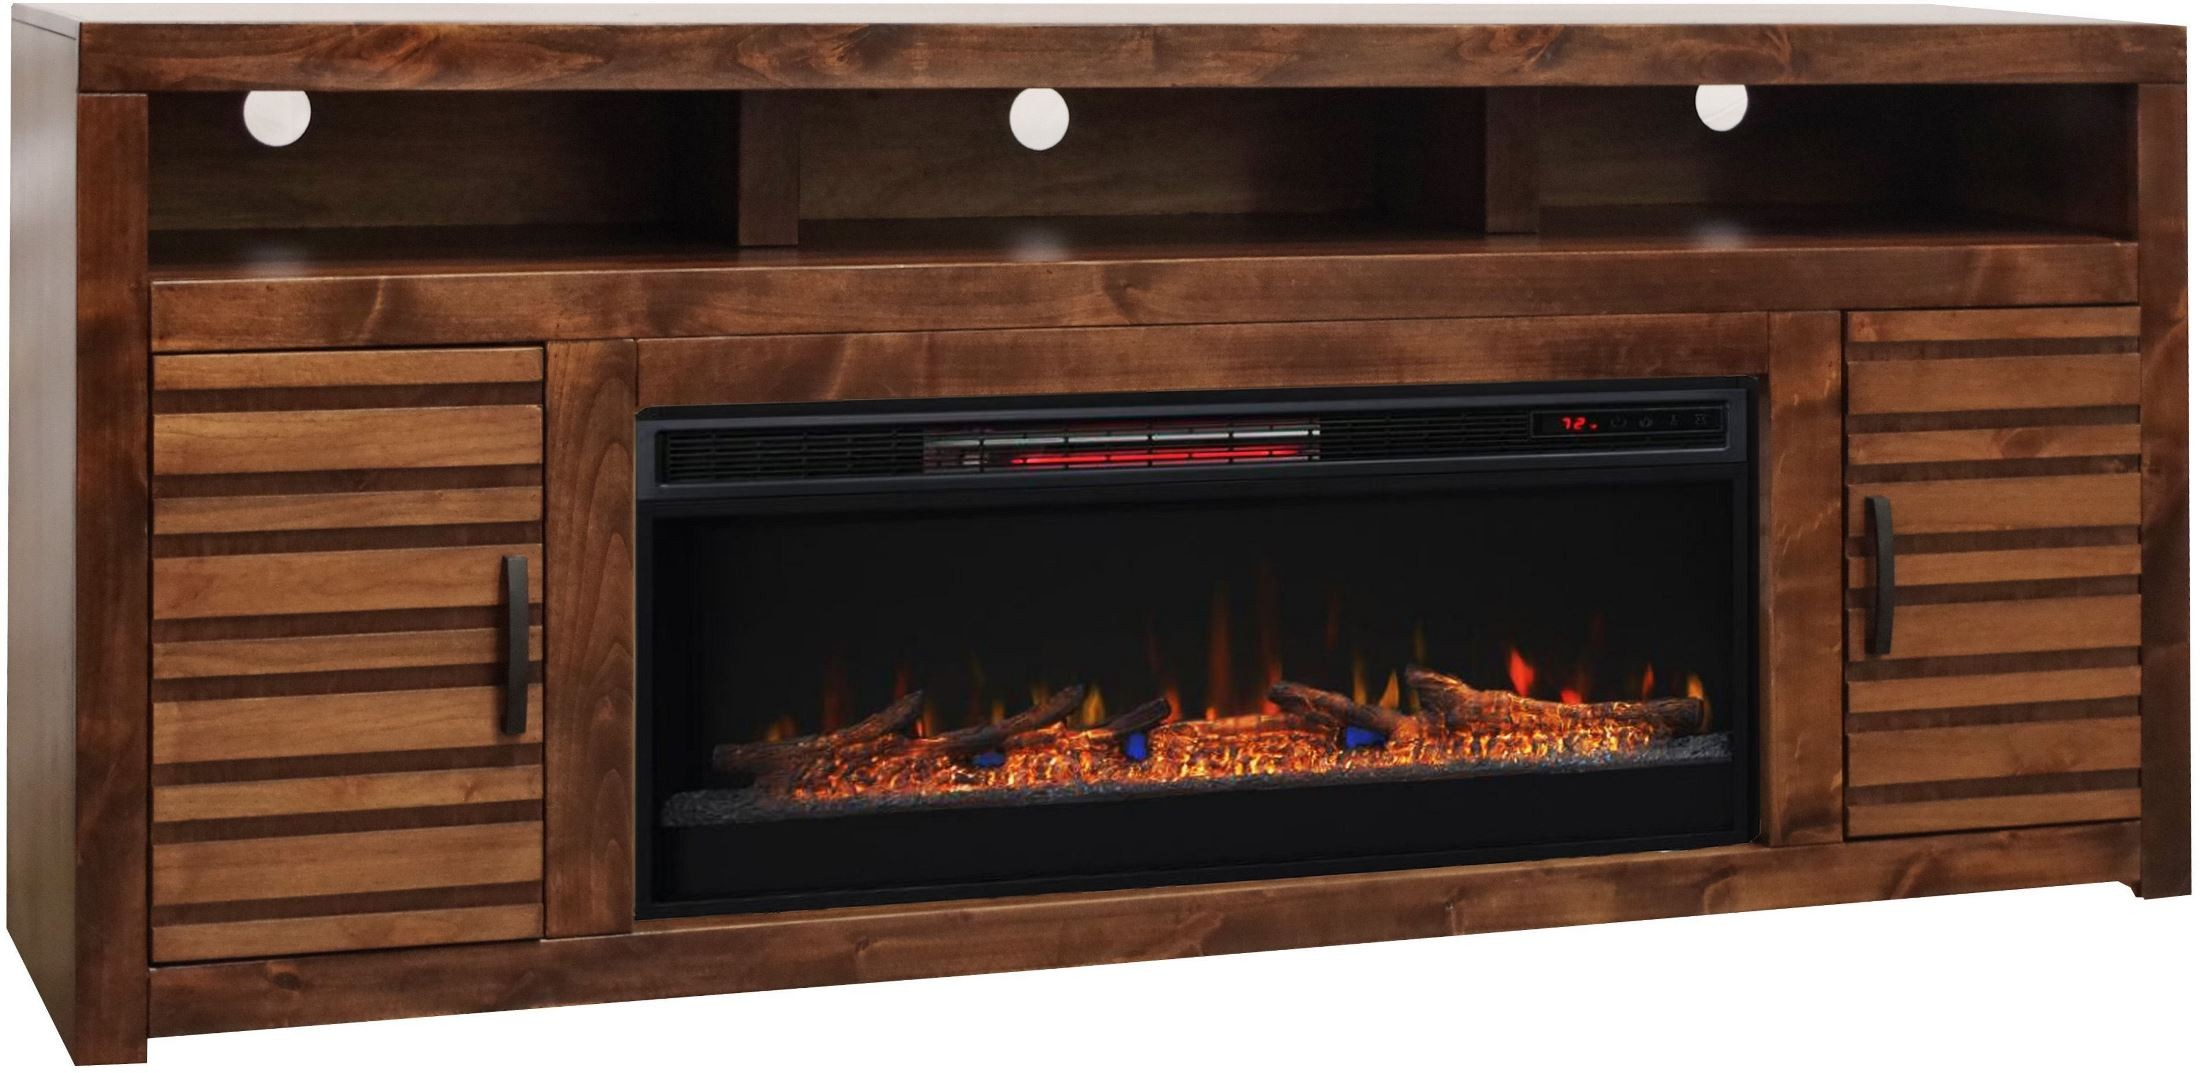 of console pin consoles fireplaces benefits flame an altra fireplace electric